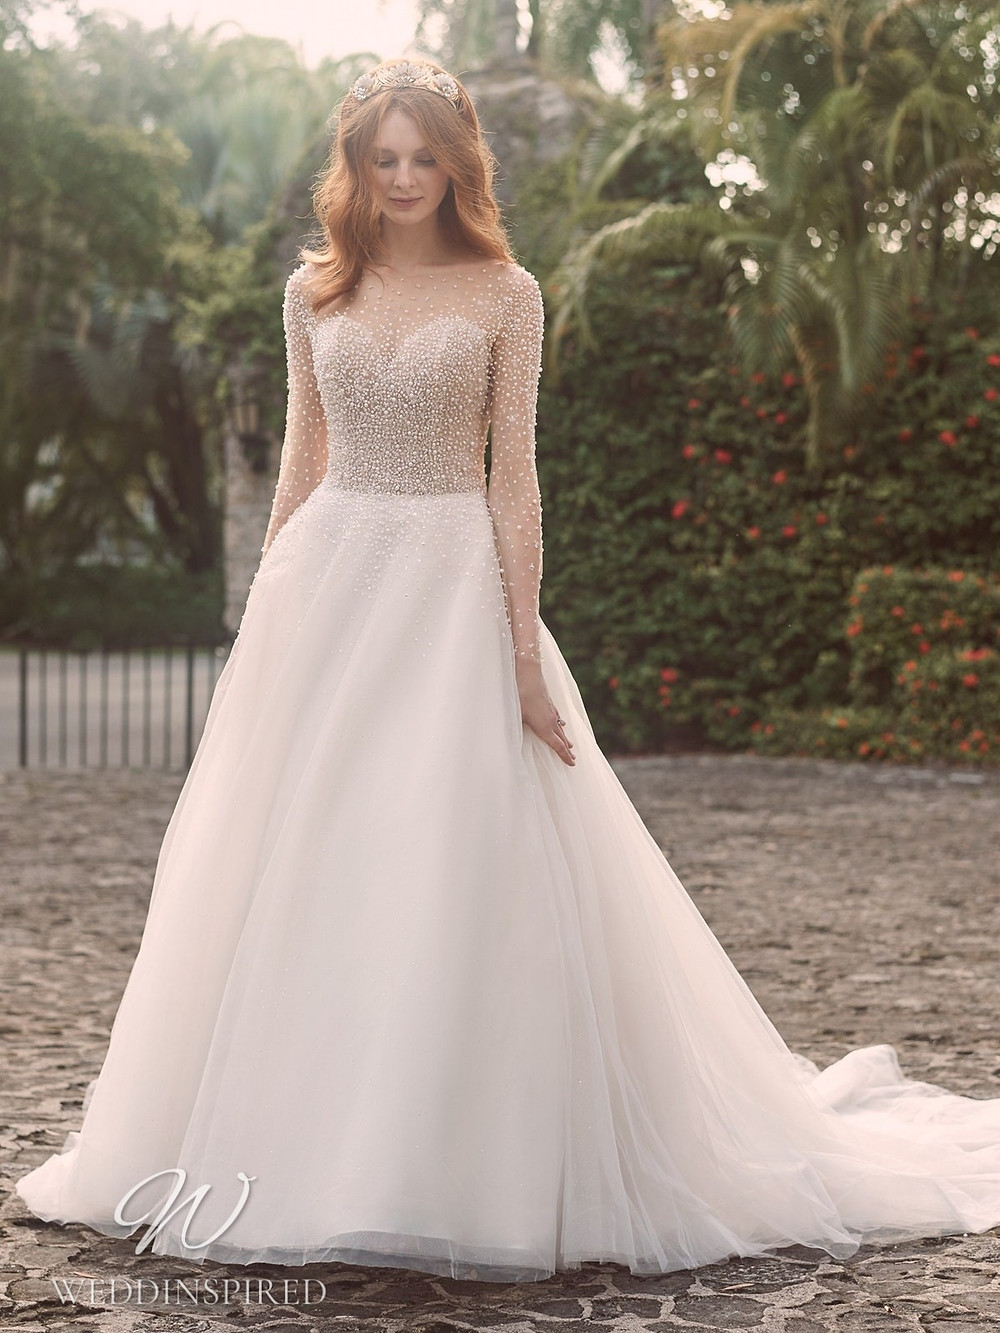 A Maggie Sottero Spring 2021 lace and tulle A-line wedding dress with long illusion sleeves and pearl details